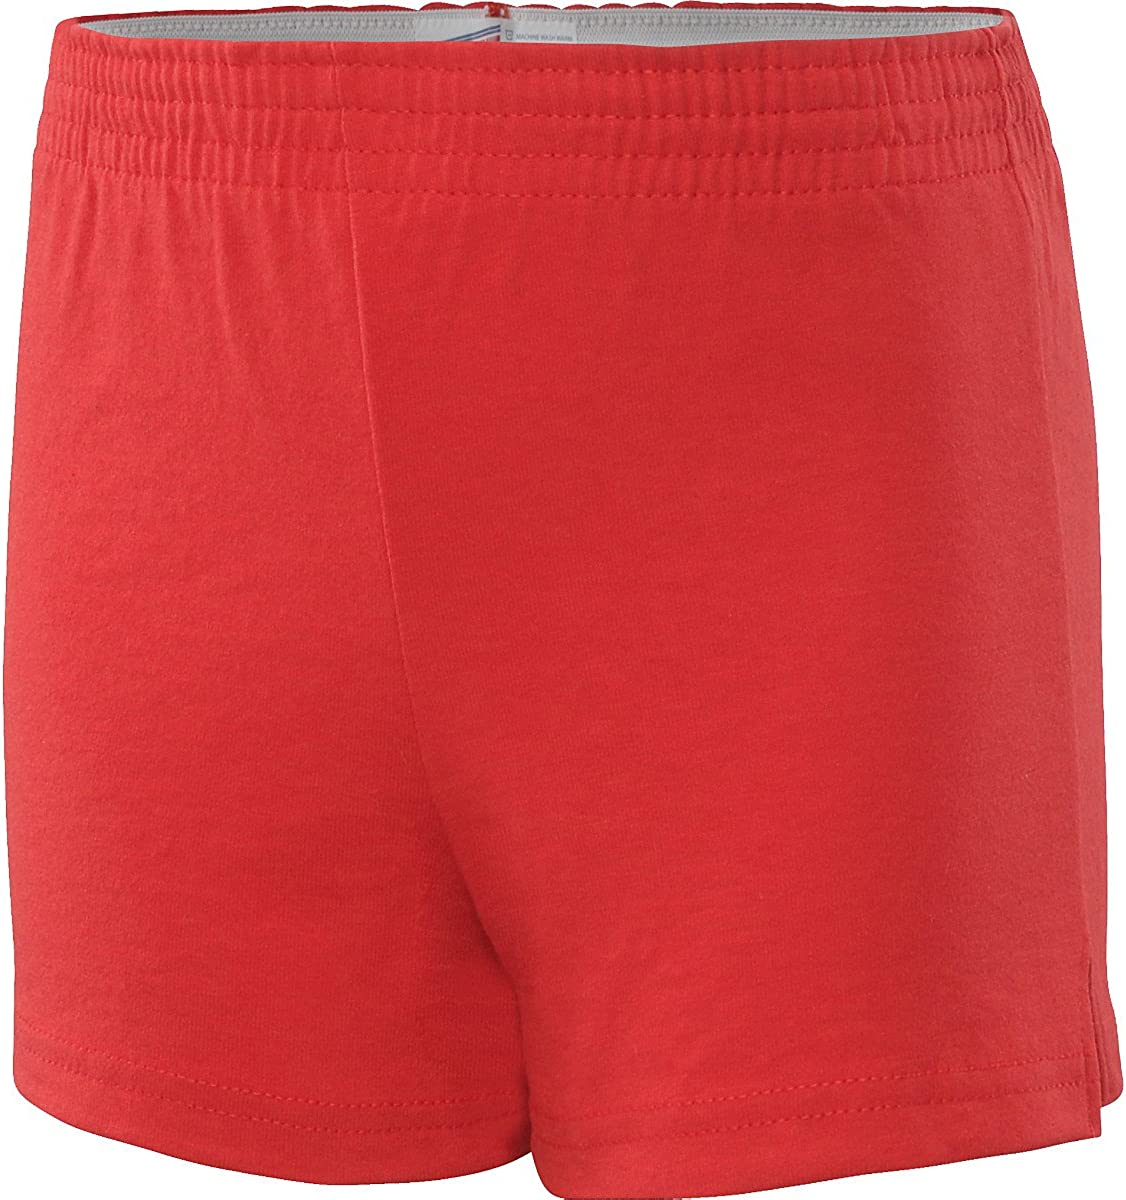 Soffe Youth Girls' Authentic Shorts (Red, X-Small)